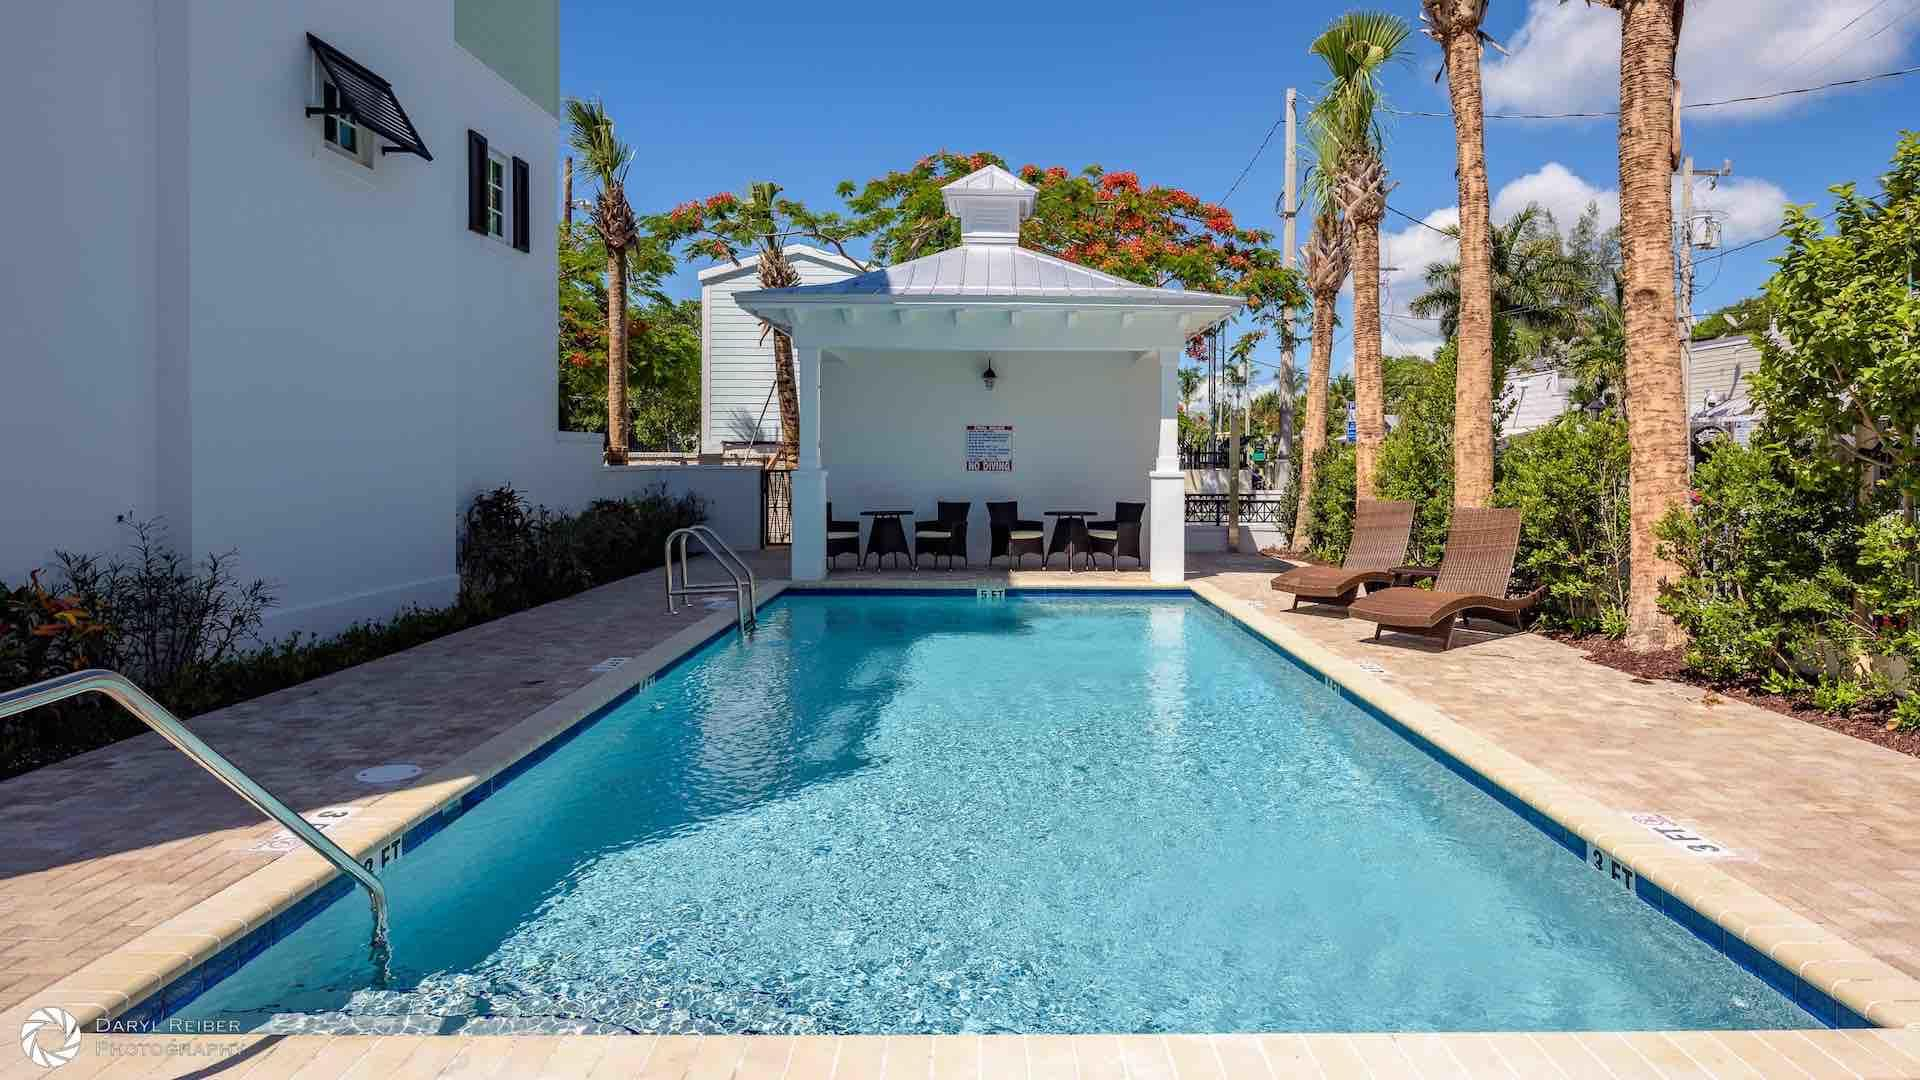 The Community Pool is just steps away from your front door...